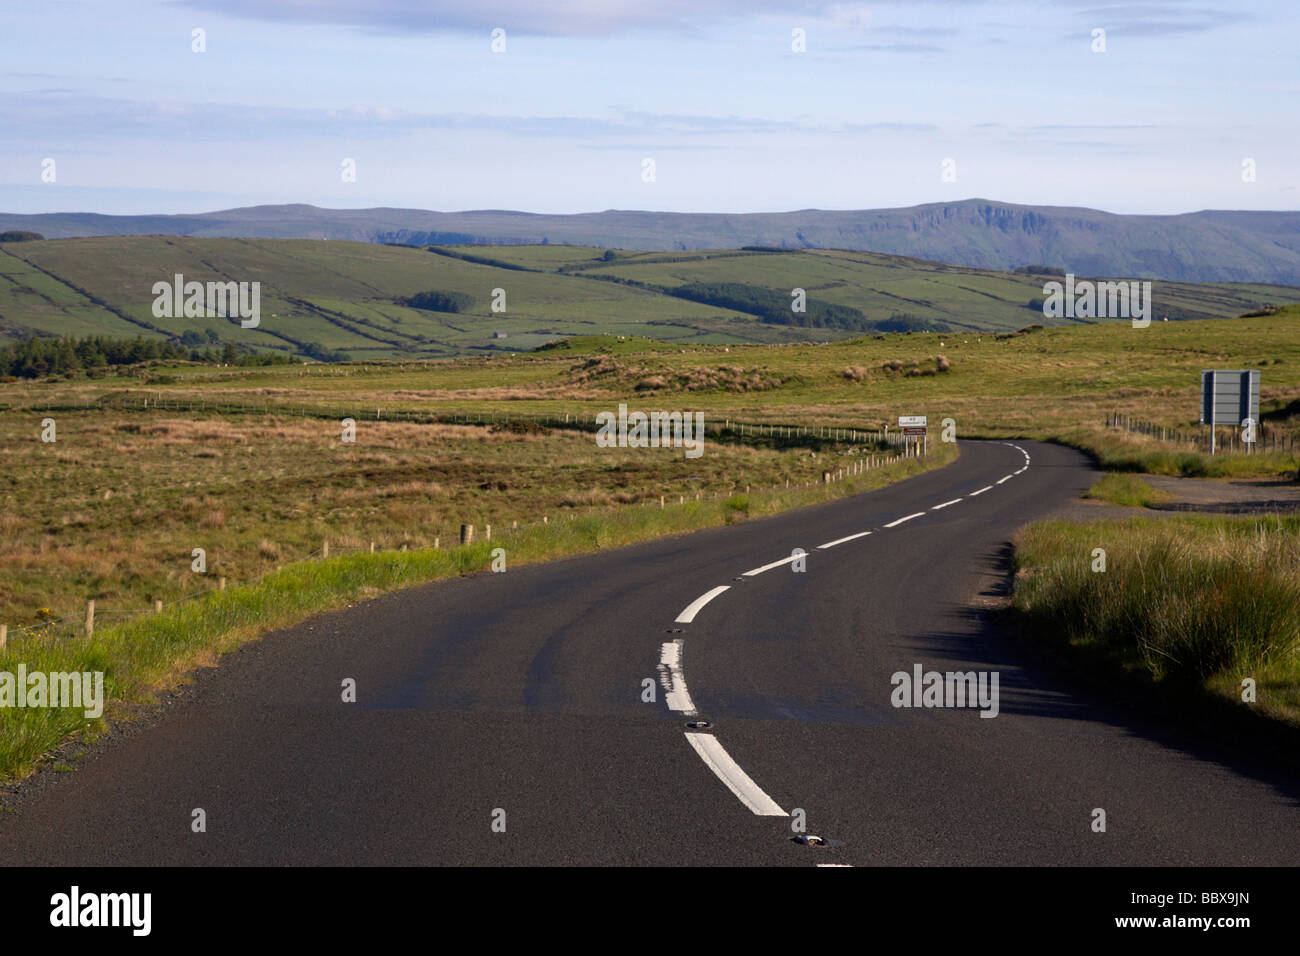 twisty bendy antrim coastal road route over mountains on the antrim plateau county antrim northern ireland uk Stock Photo